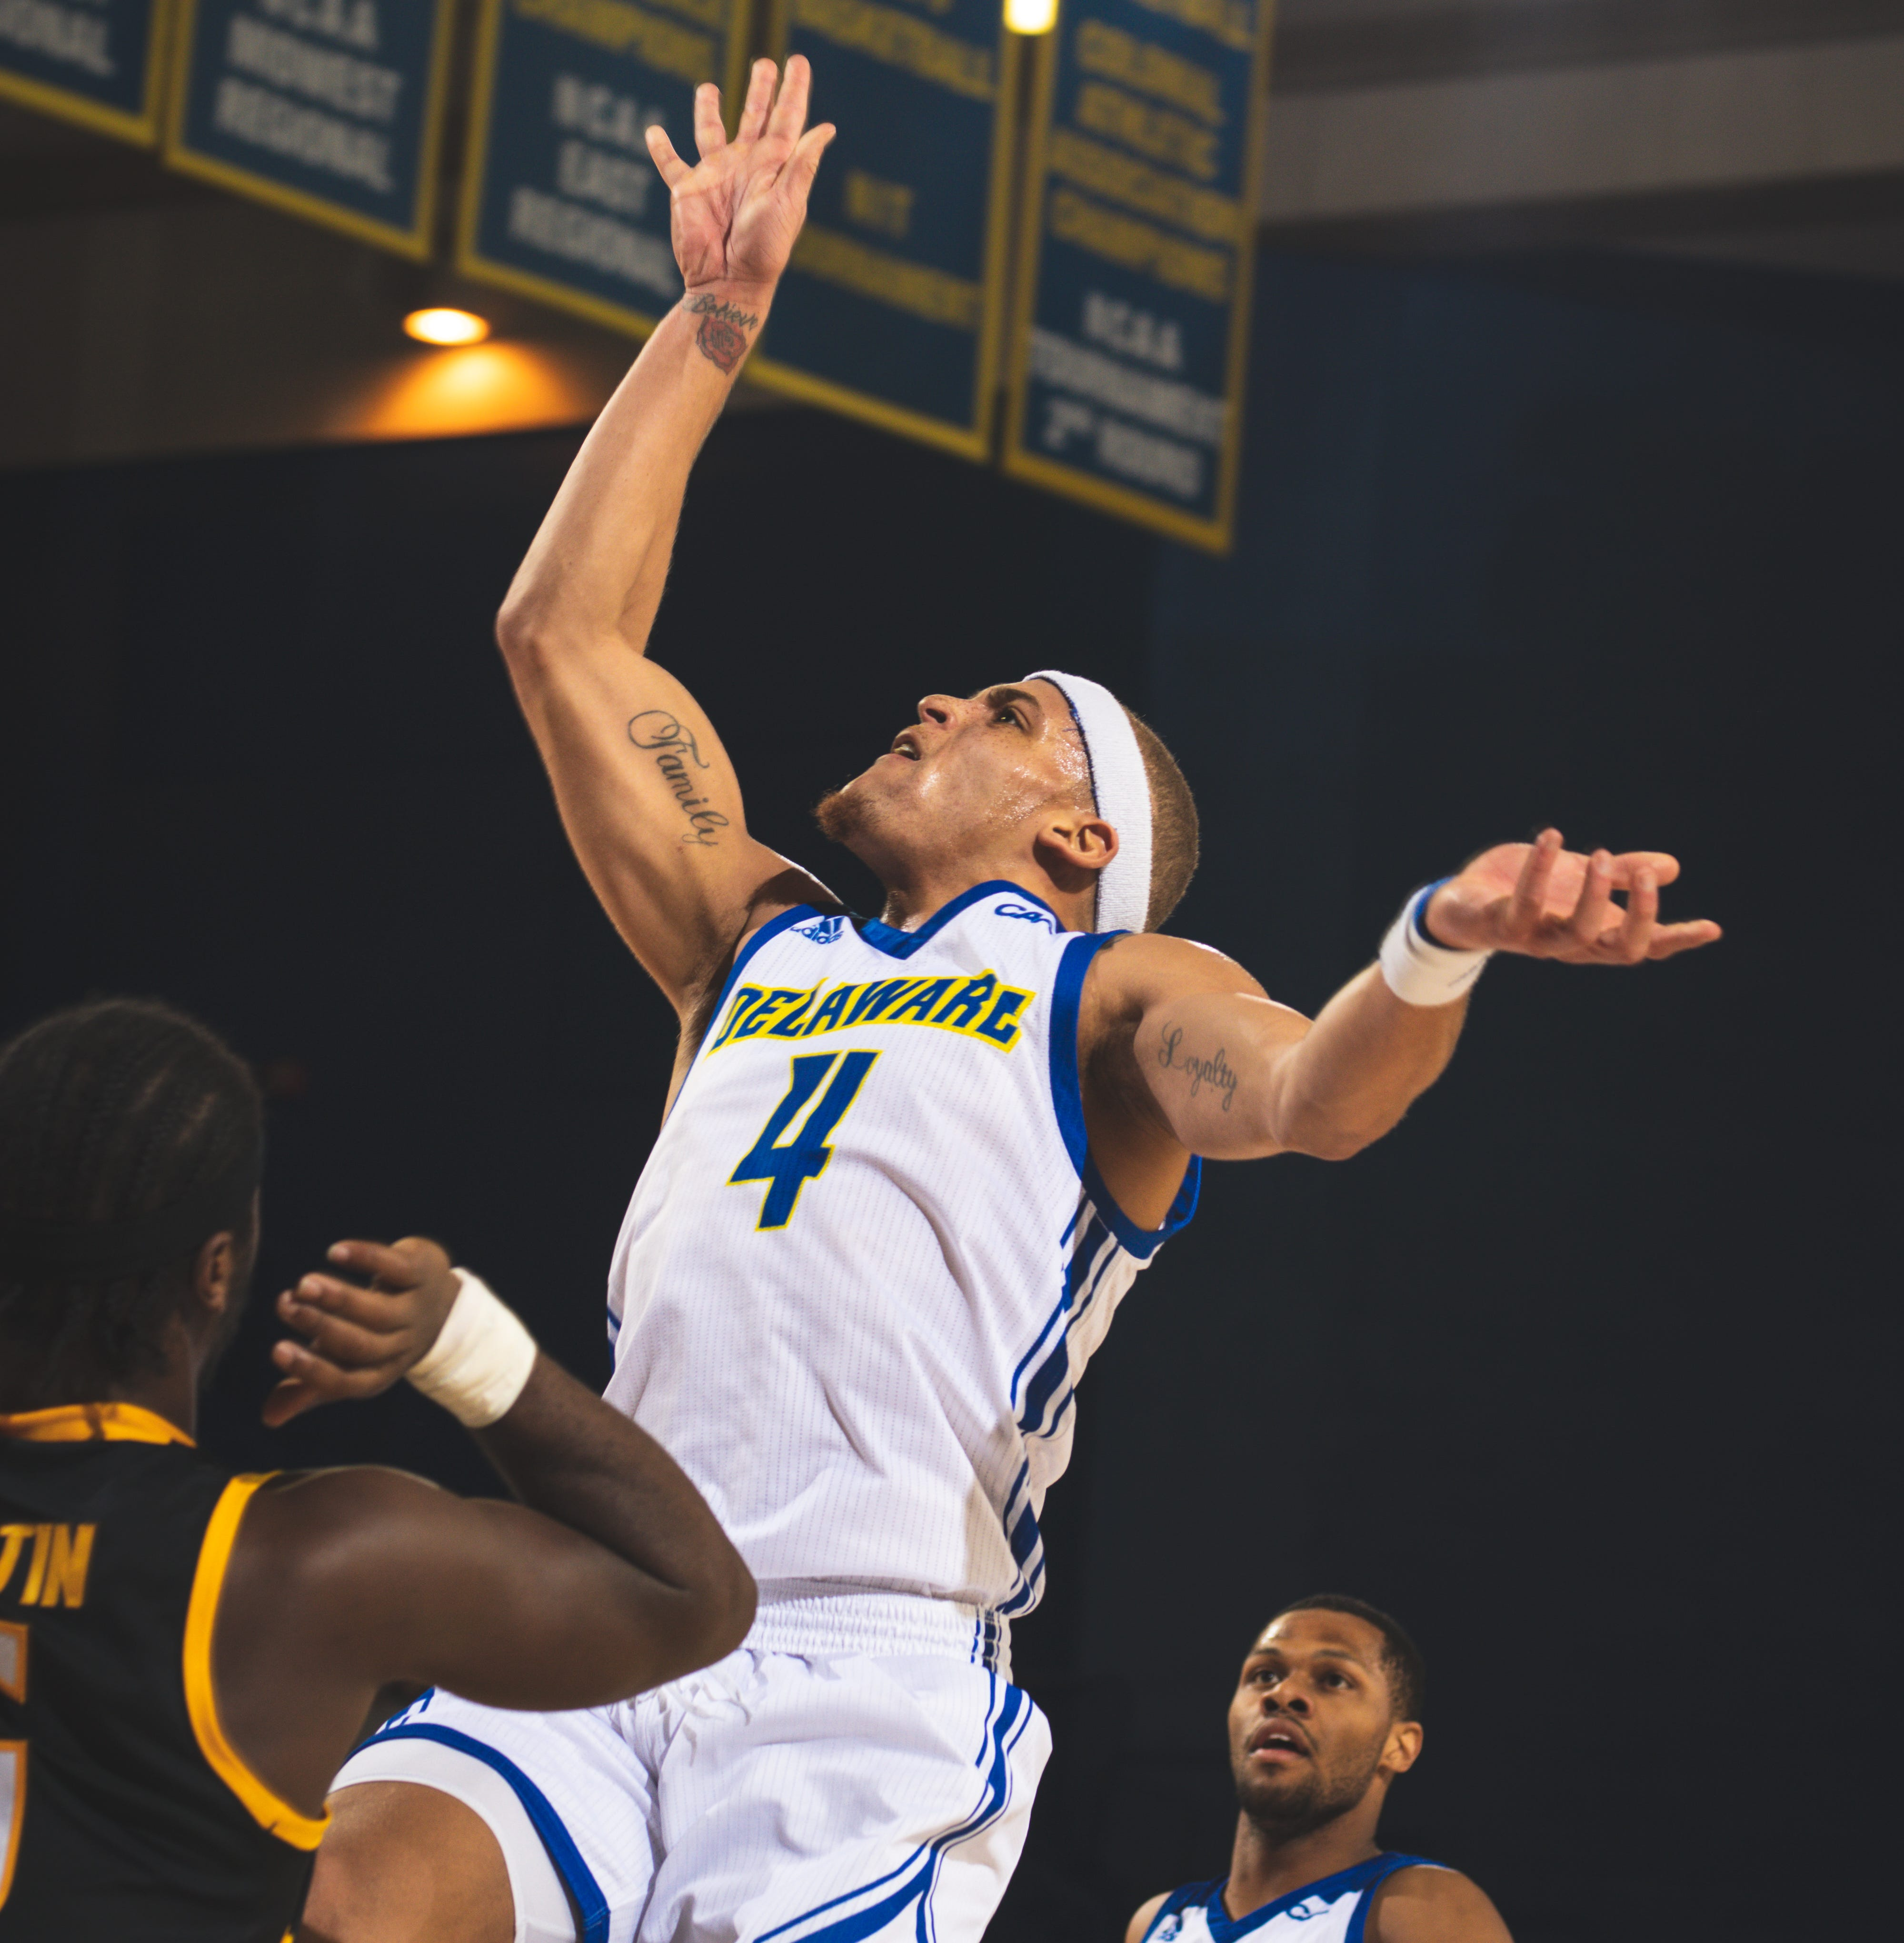 Tresolini: Delaware lacks killer instinct as Towson rallies for basketball victory